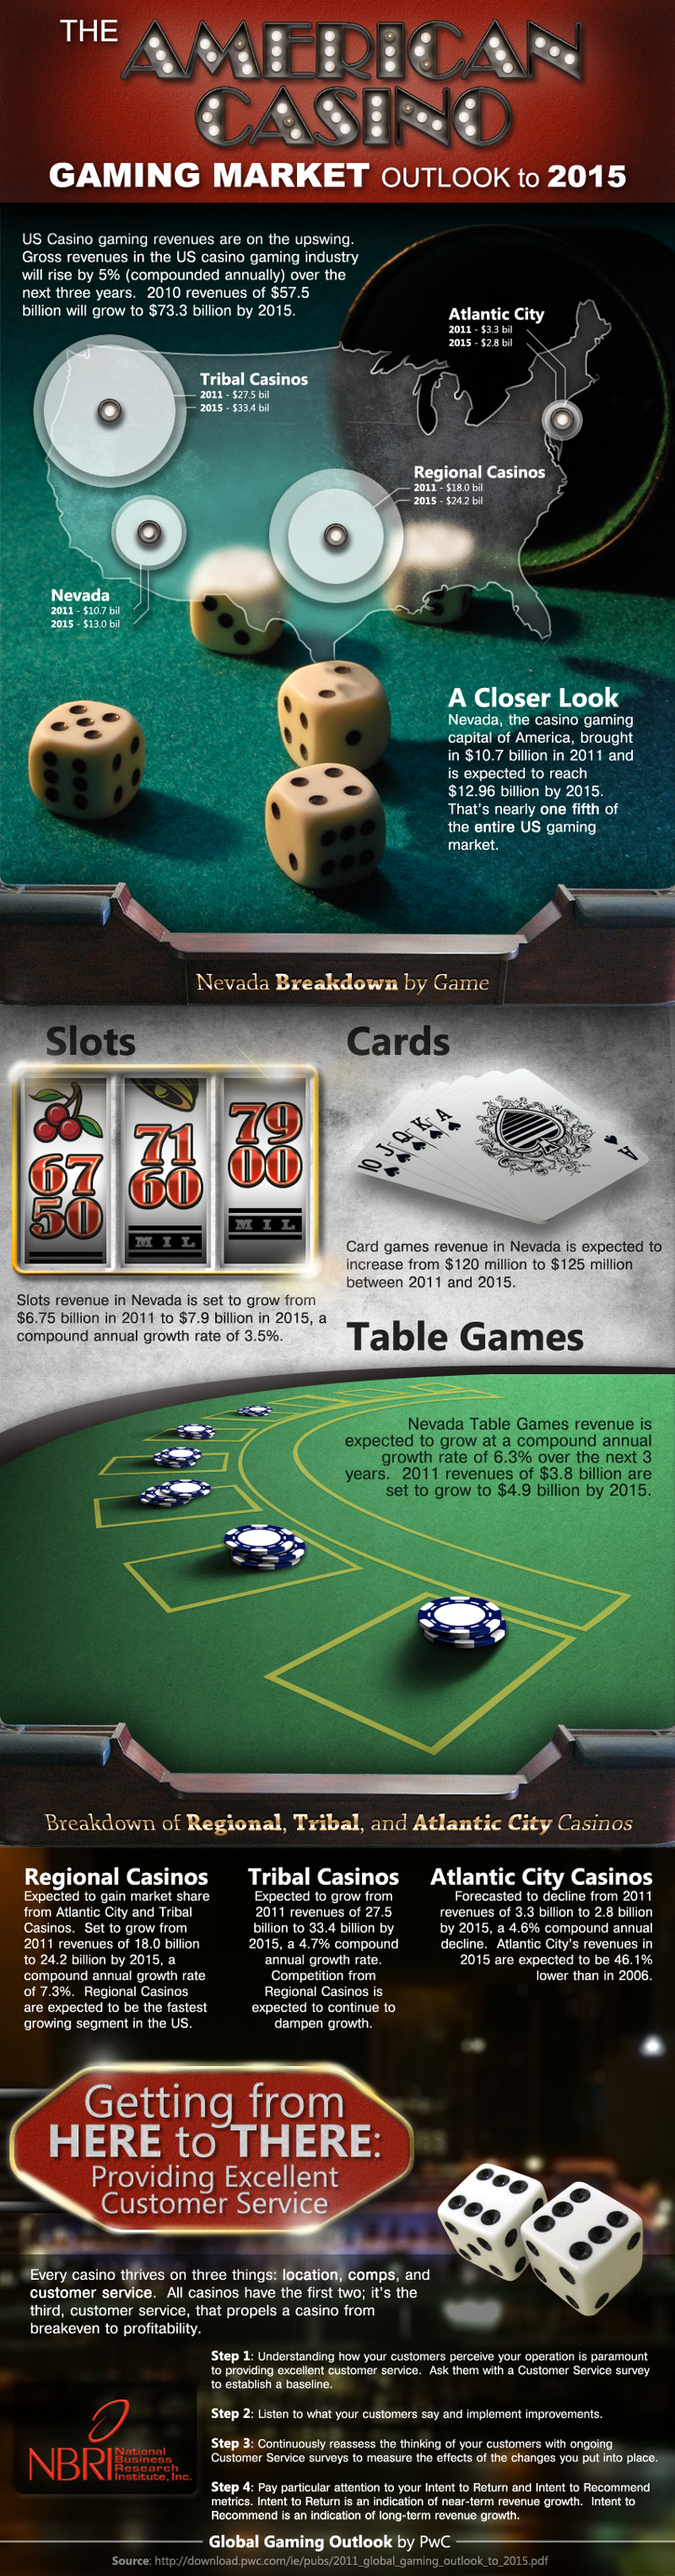 Casino Industry Trends and Statistics